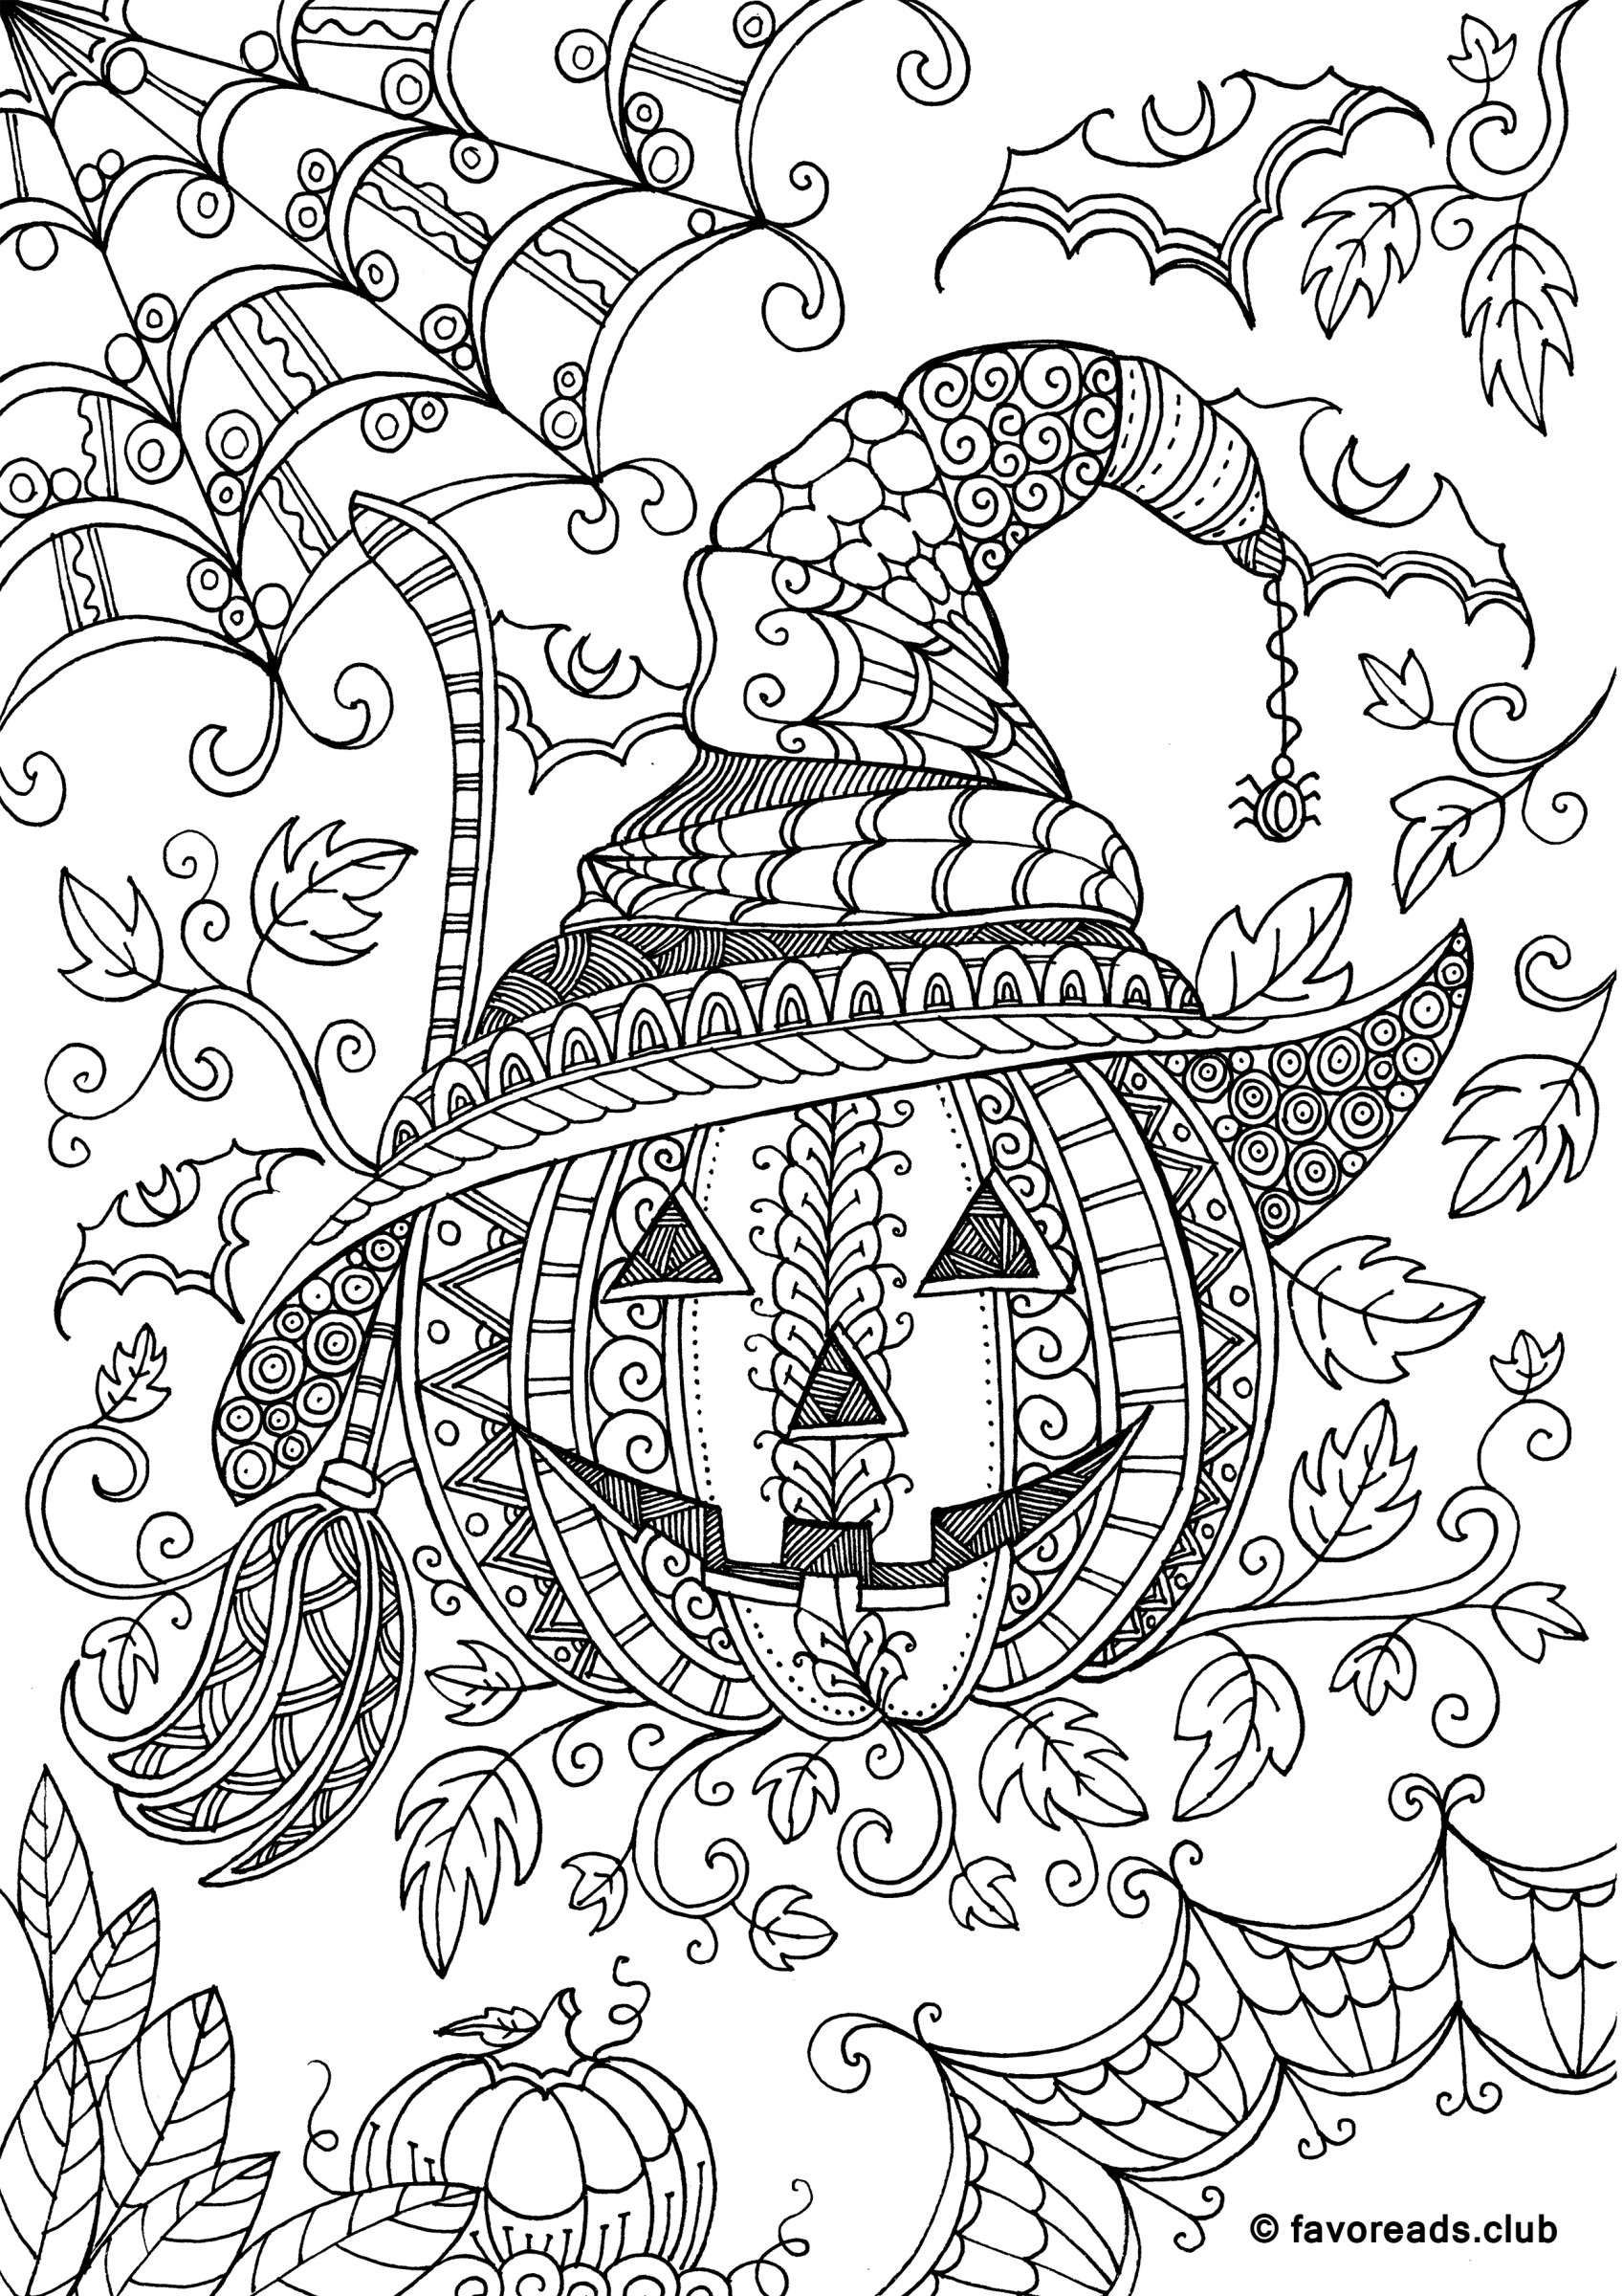 Favoreads Pumpkin 4232 Jpg 1 697 2 400 Pixels Pumpkin Coloring